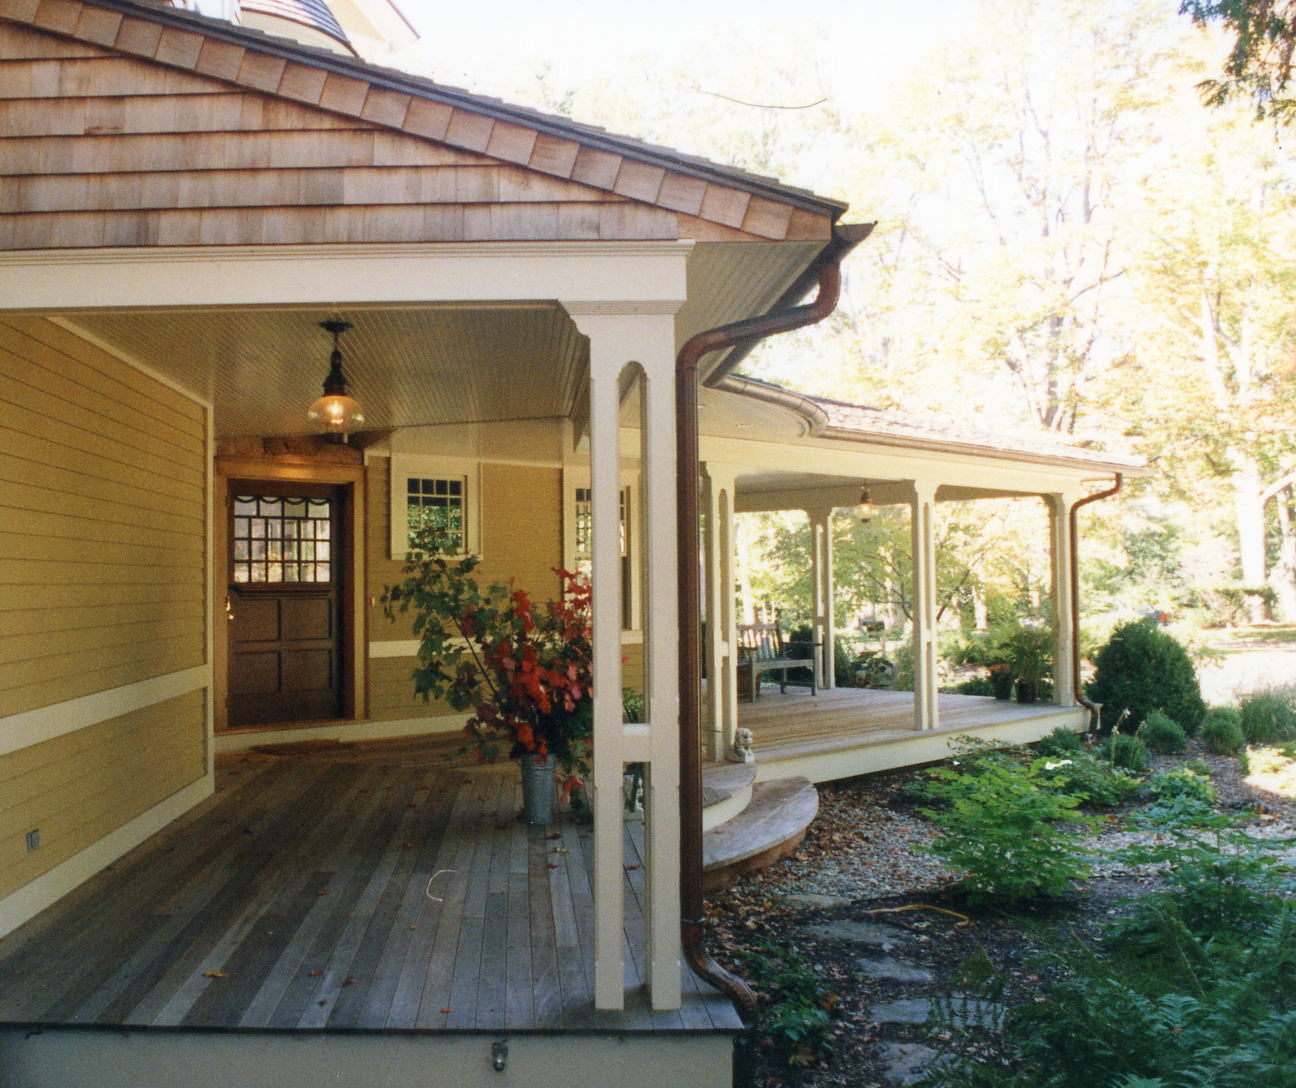 7 Entry Porch.jpg